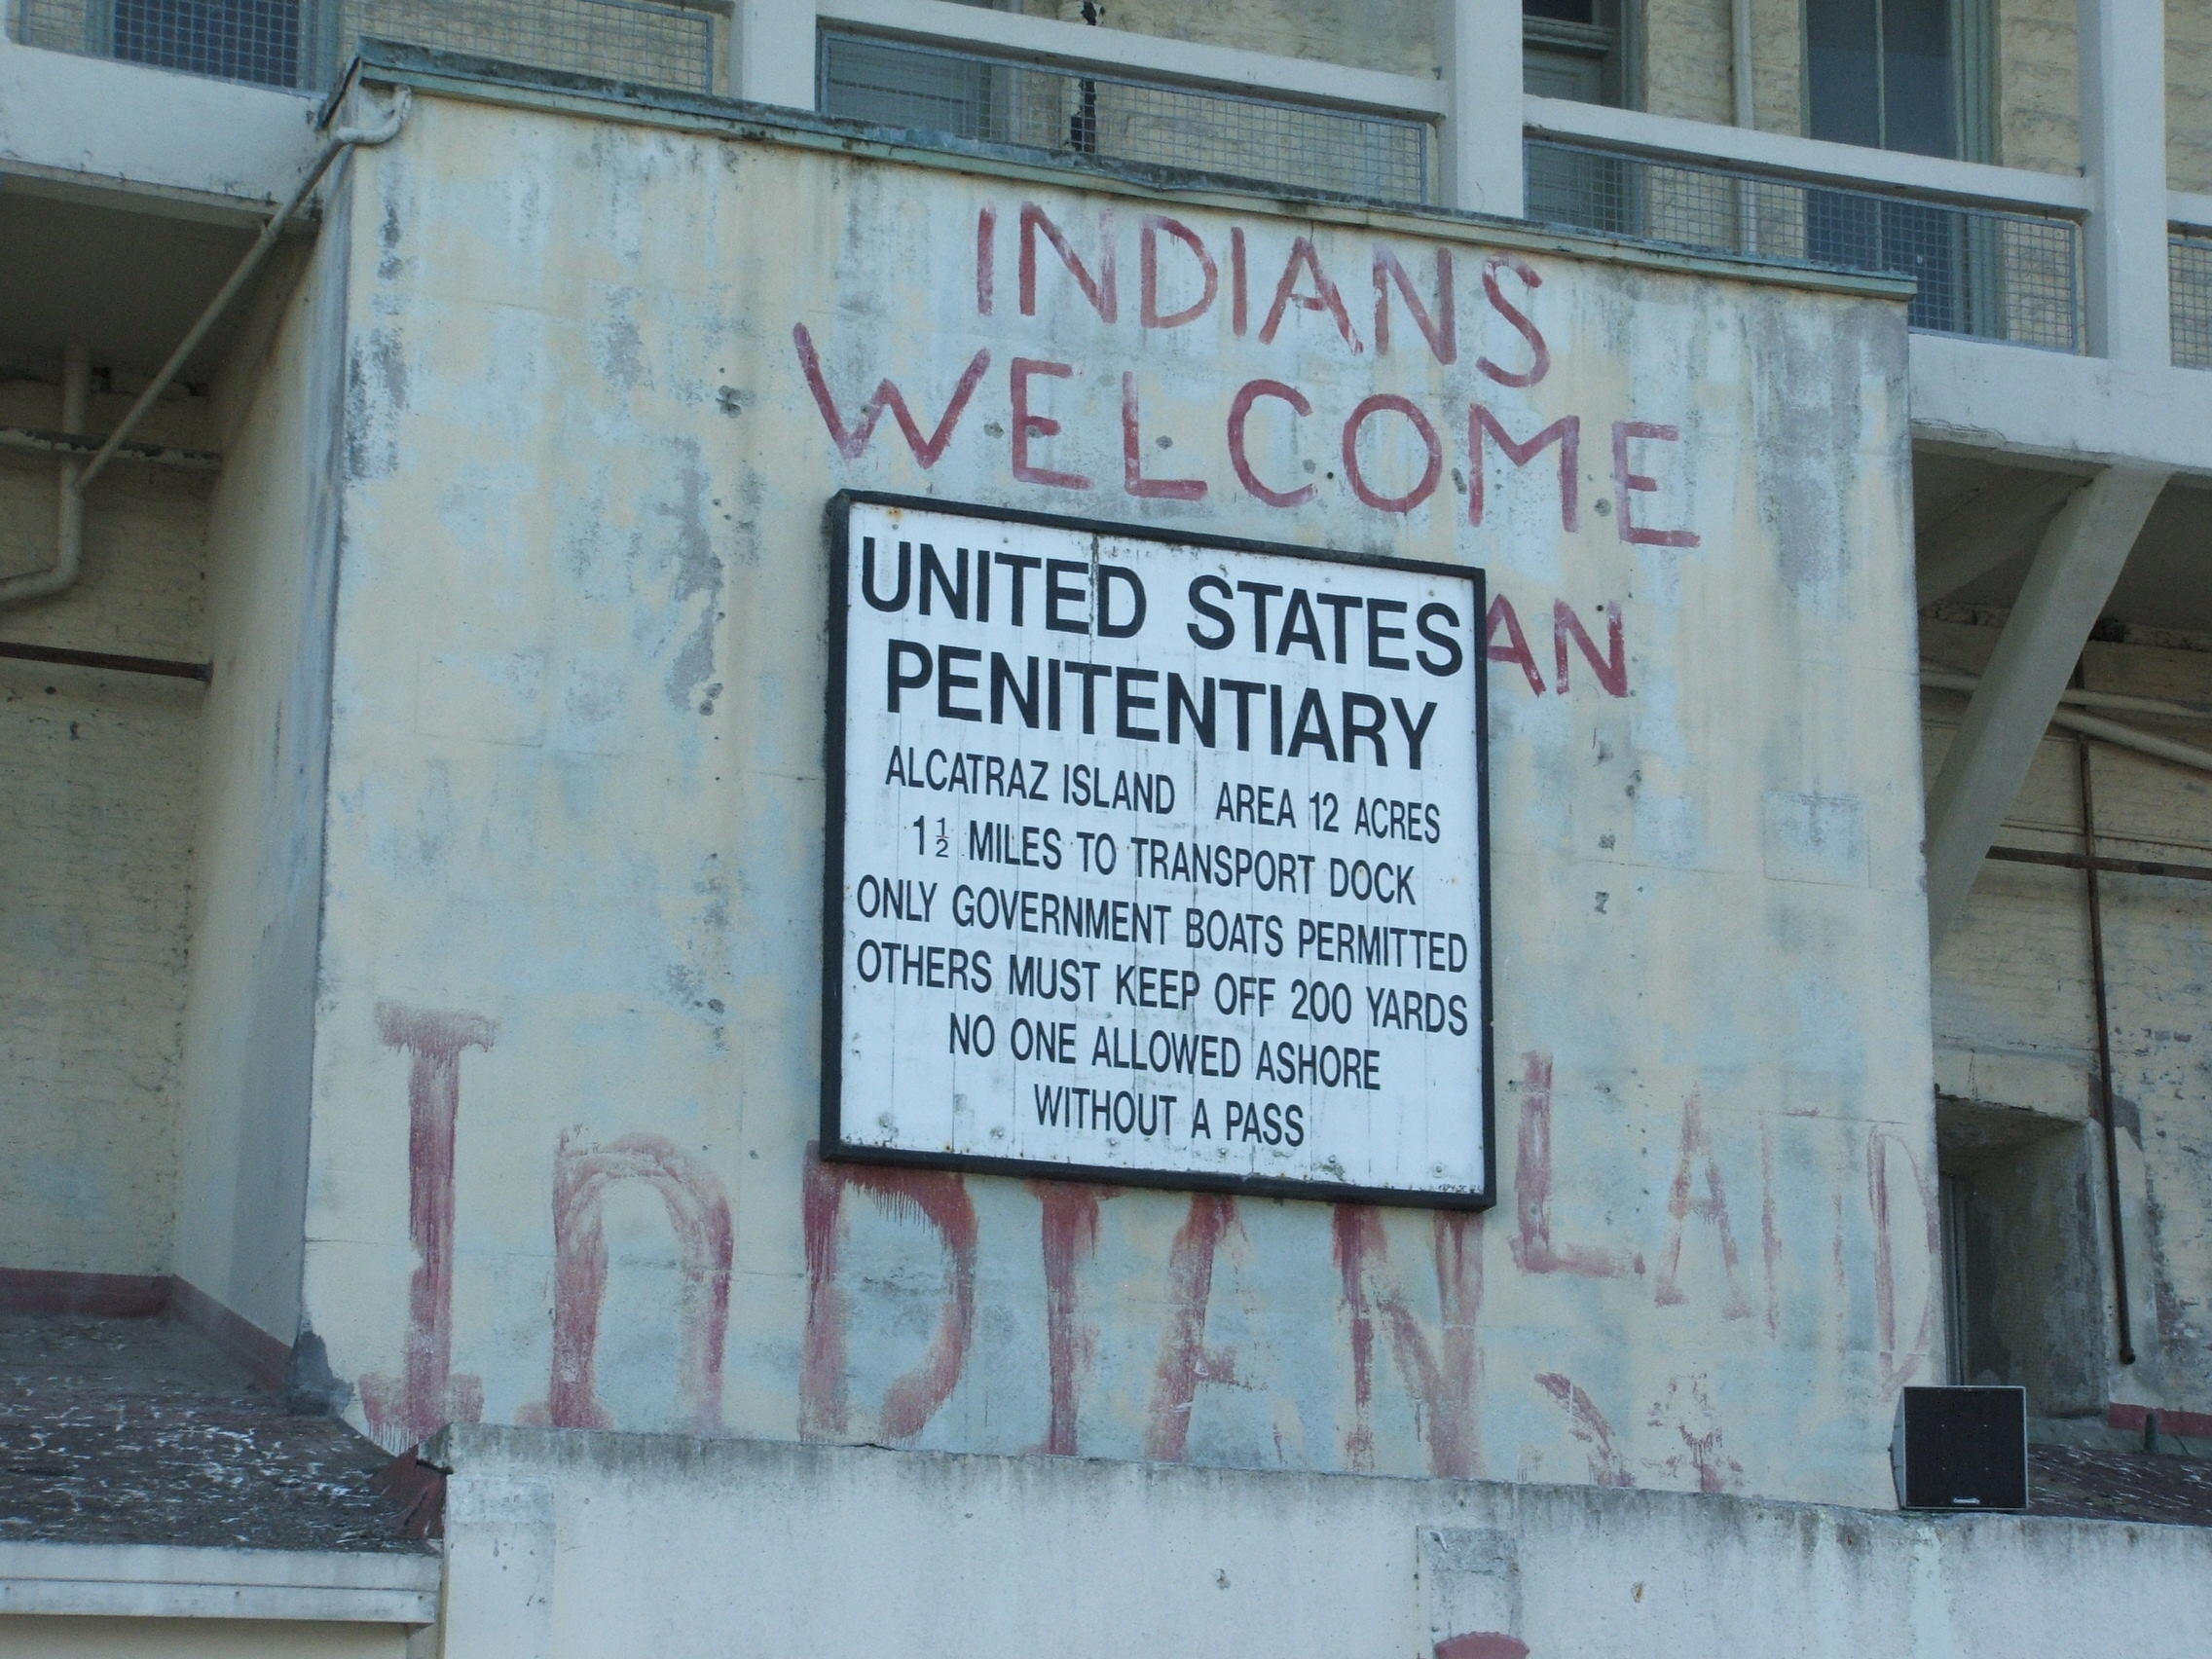 YES! Magazine: Alcatraz activist documents decades of 'Native Resistance'